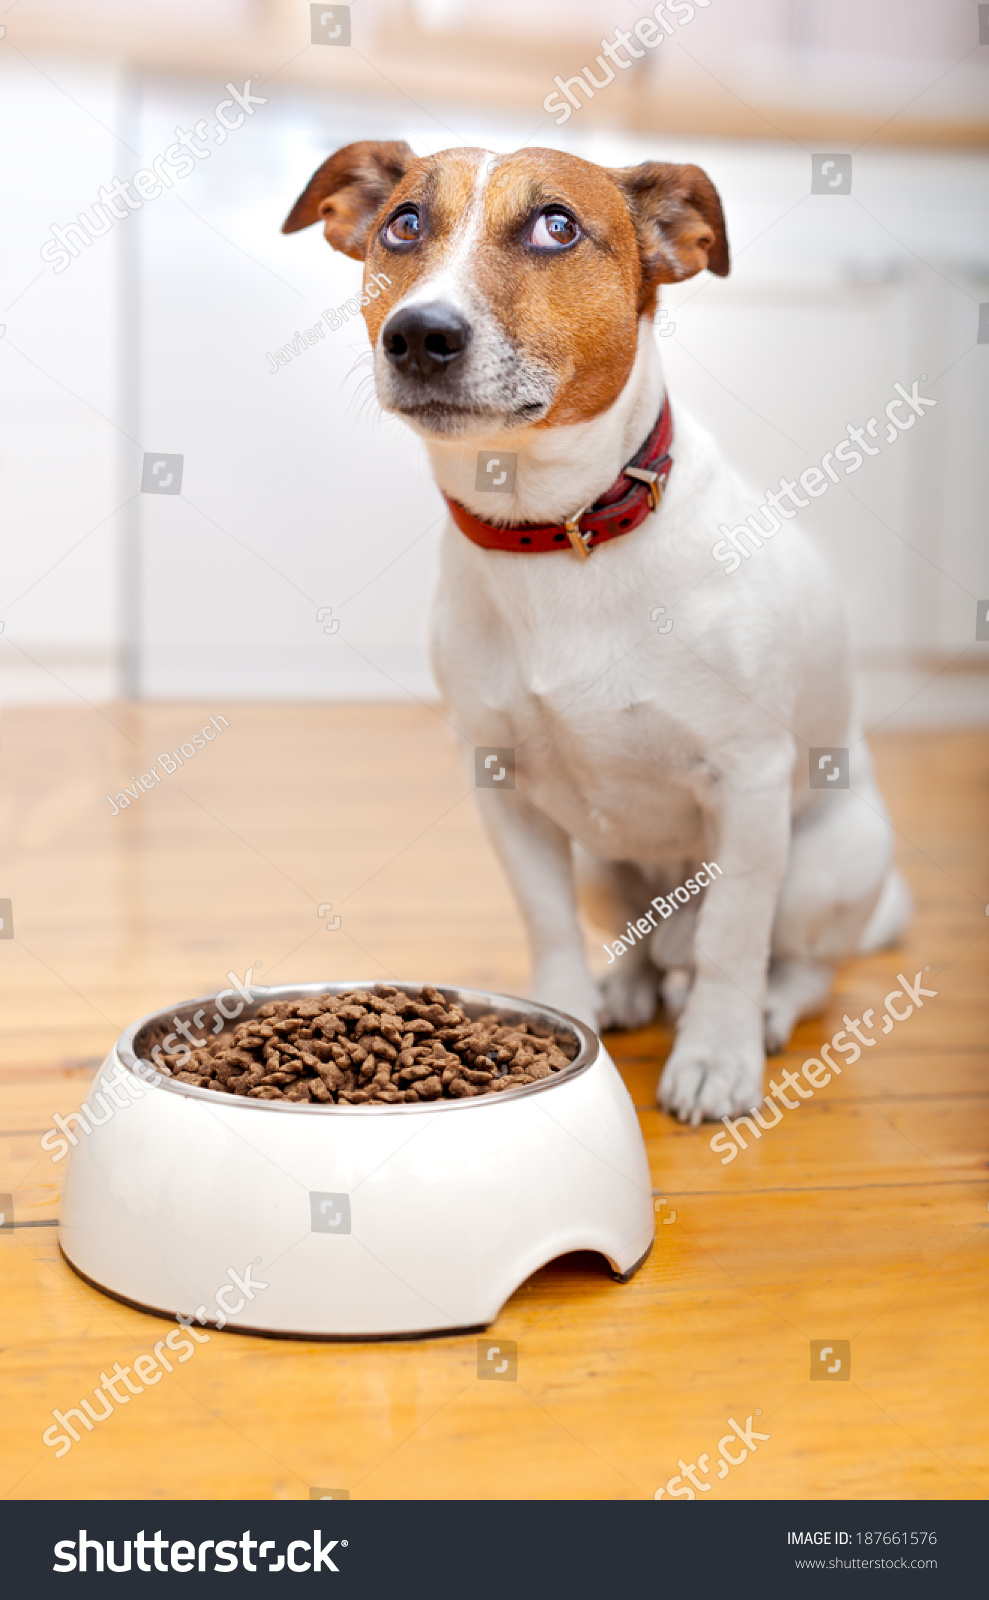 Hungry Dog Waiting Eat Out His Stock Photo 187661576